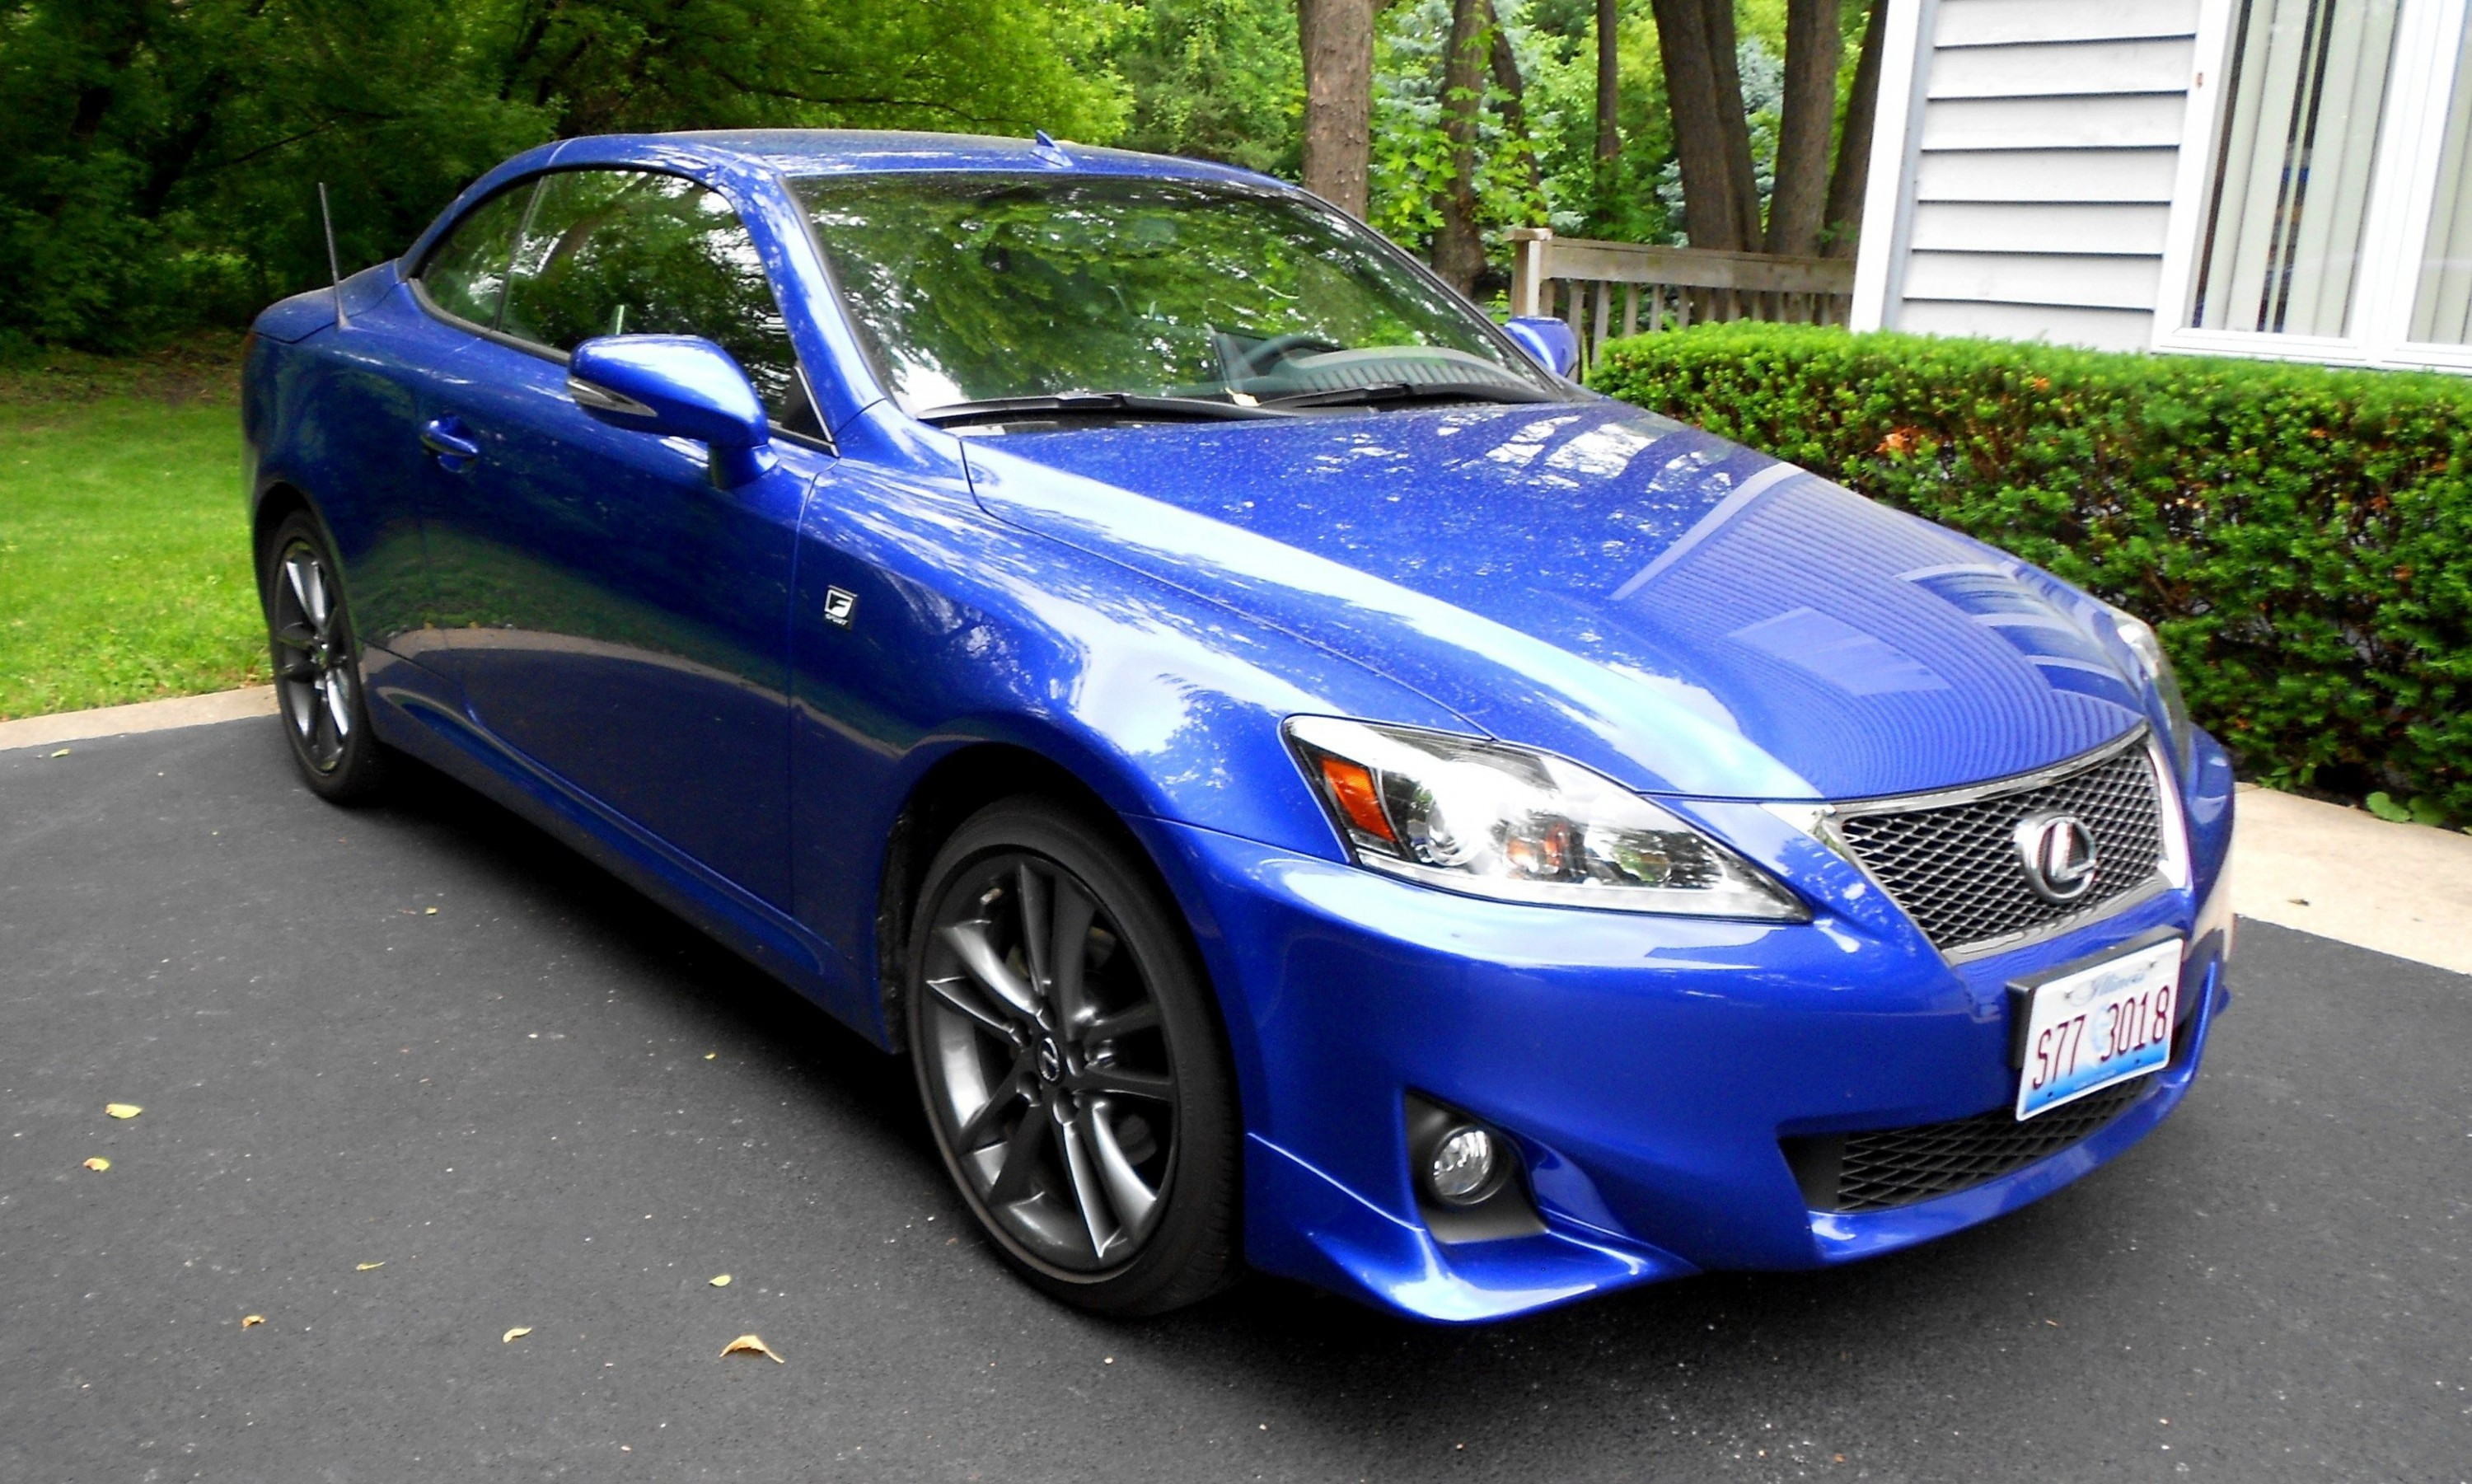 road test review 2014 lexus is250 f sport convertible is sexy top down summer cruiser 28. Black Bedroom Furniture Sets. Home Design Ideas